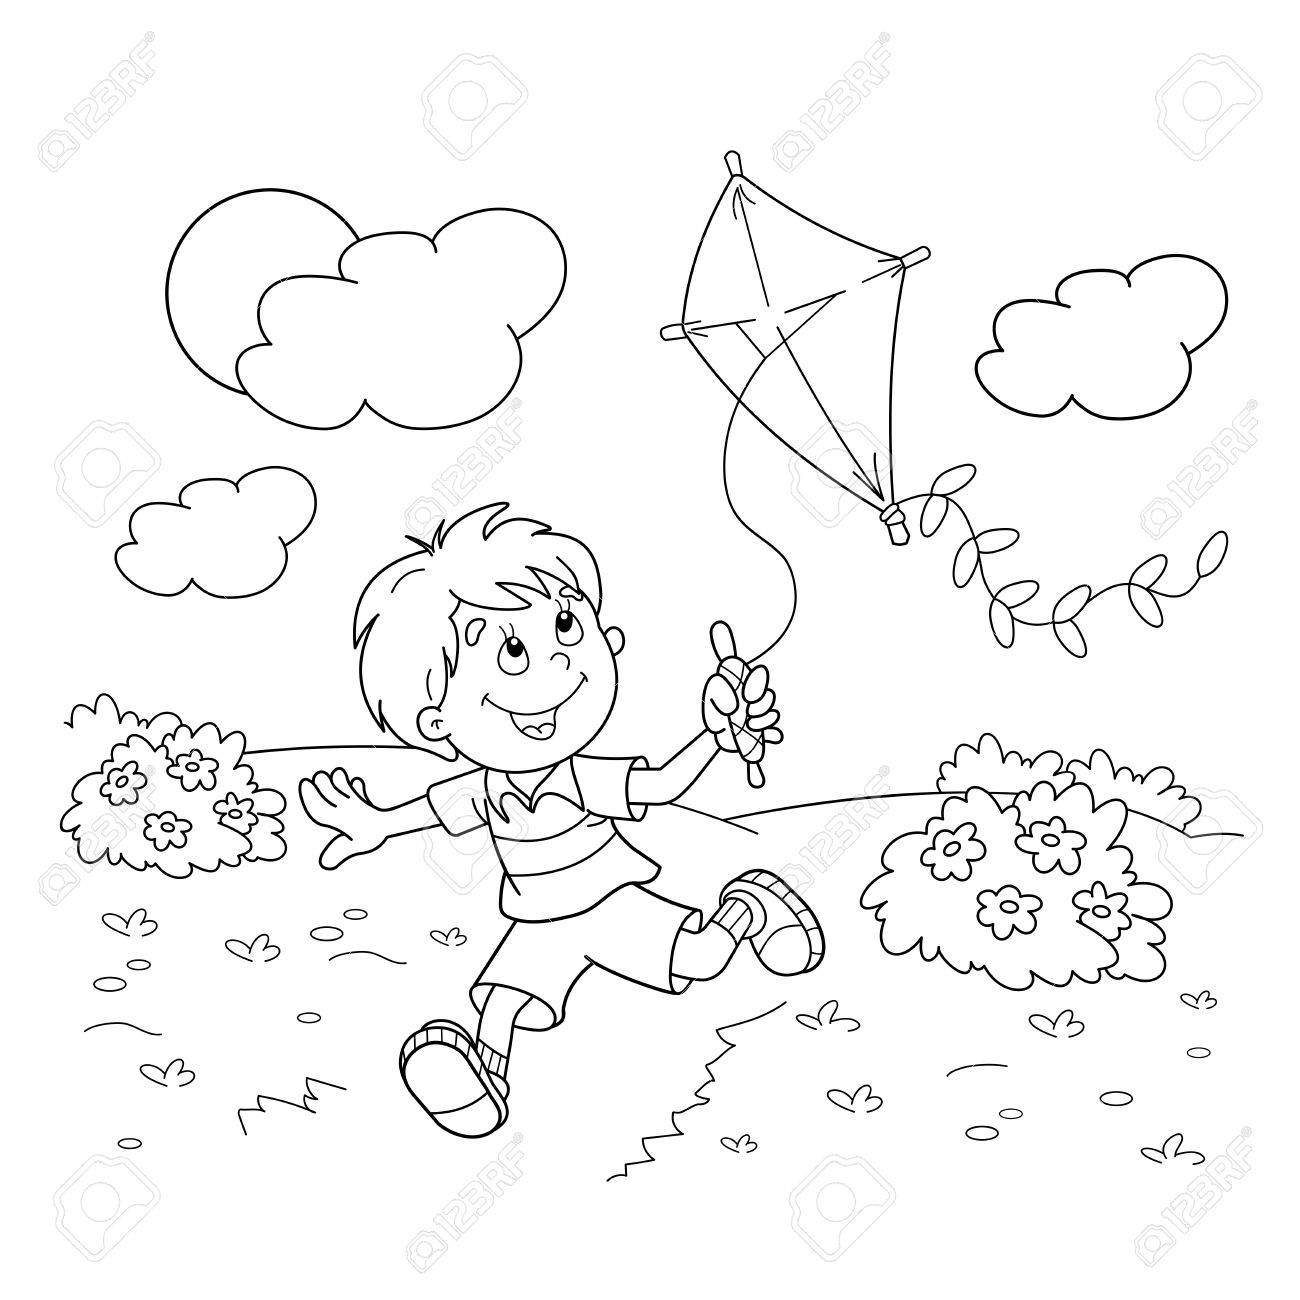 Coloring pages kite - Coloring Page Outline Of Cartoon Boy Running With A Kite Coloring Book For Kids Stock